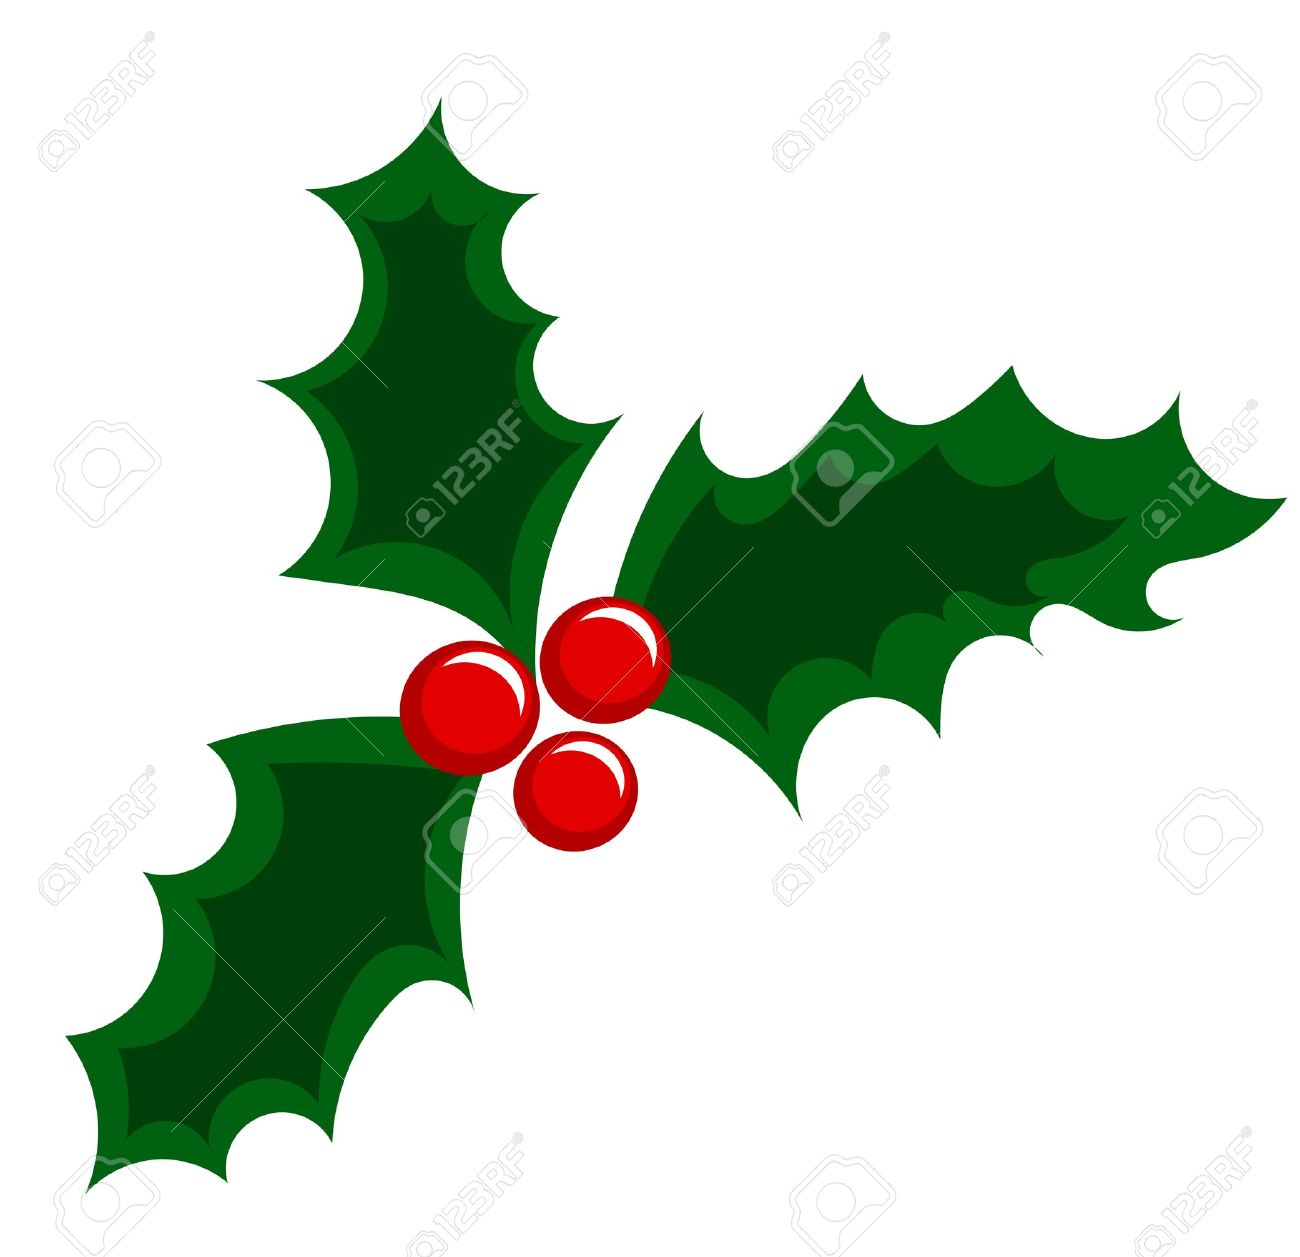 Holly Berry Christmas Illustration Royalty Free Cliparts, Vectors.